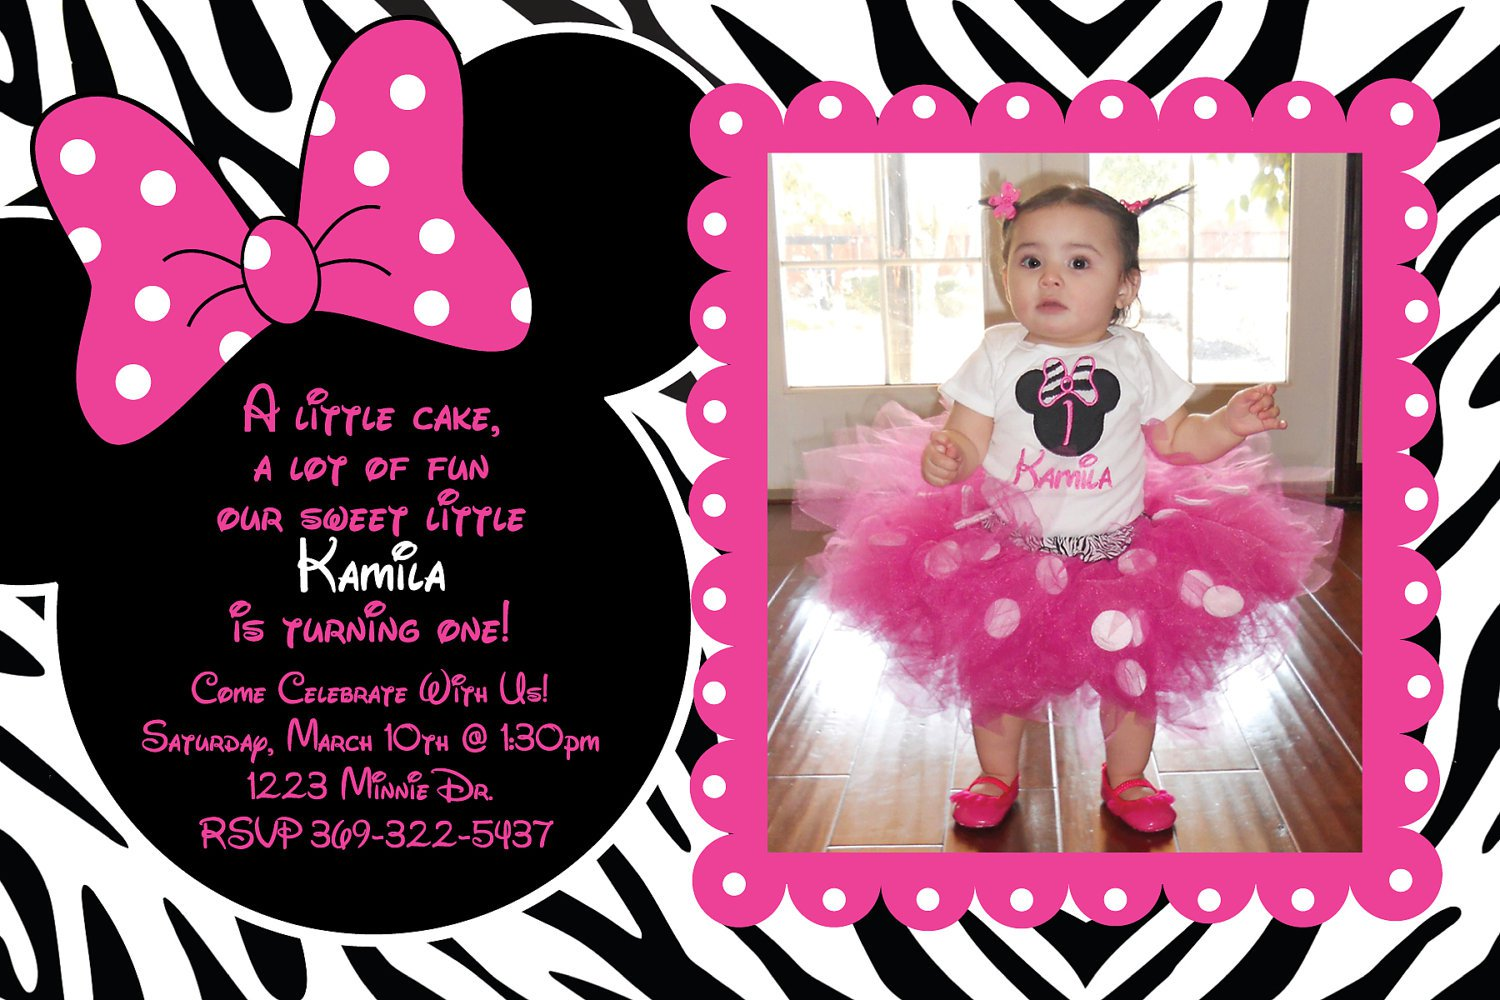 St Birthday Invitations Blank - Minnie mouse birthday invitations blank